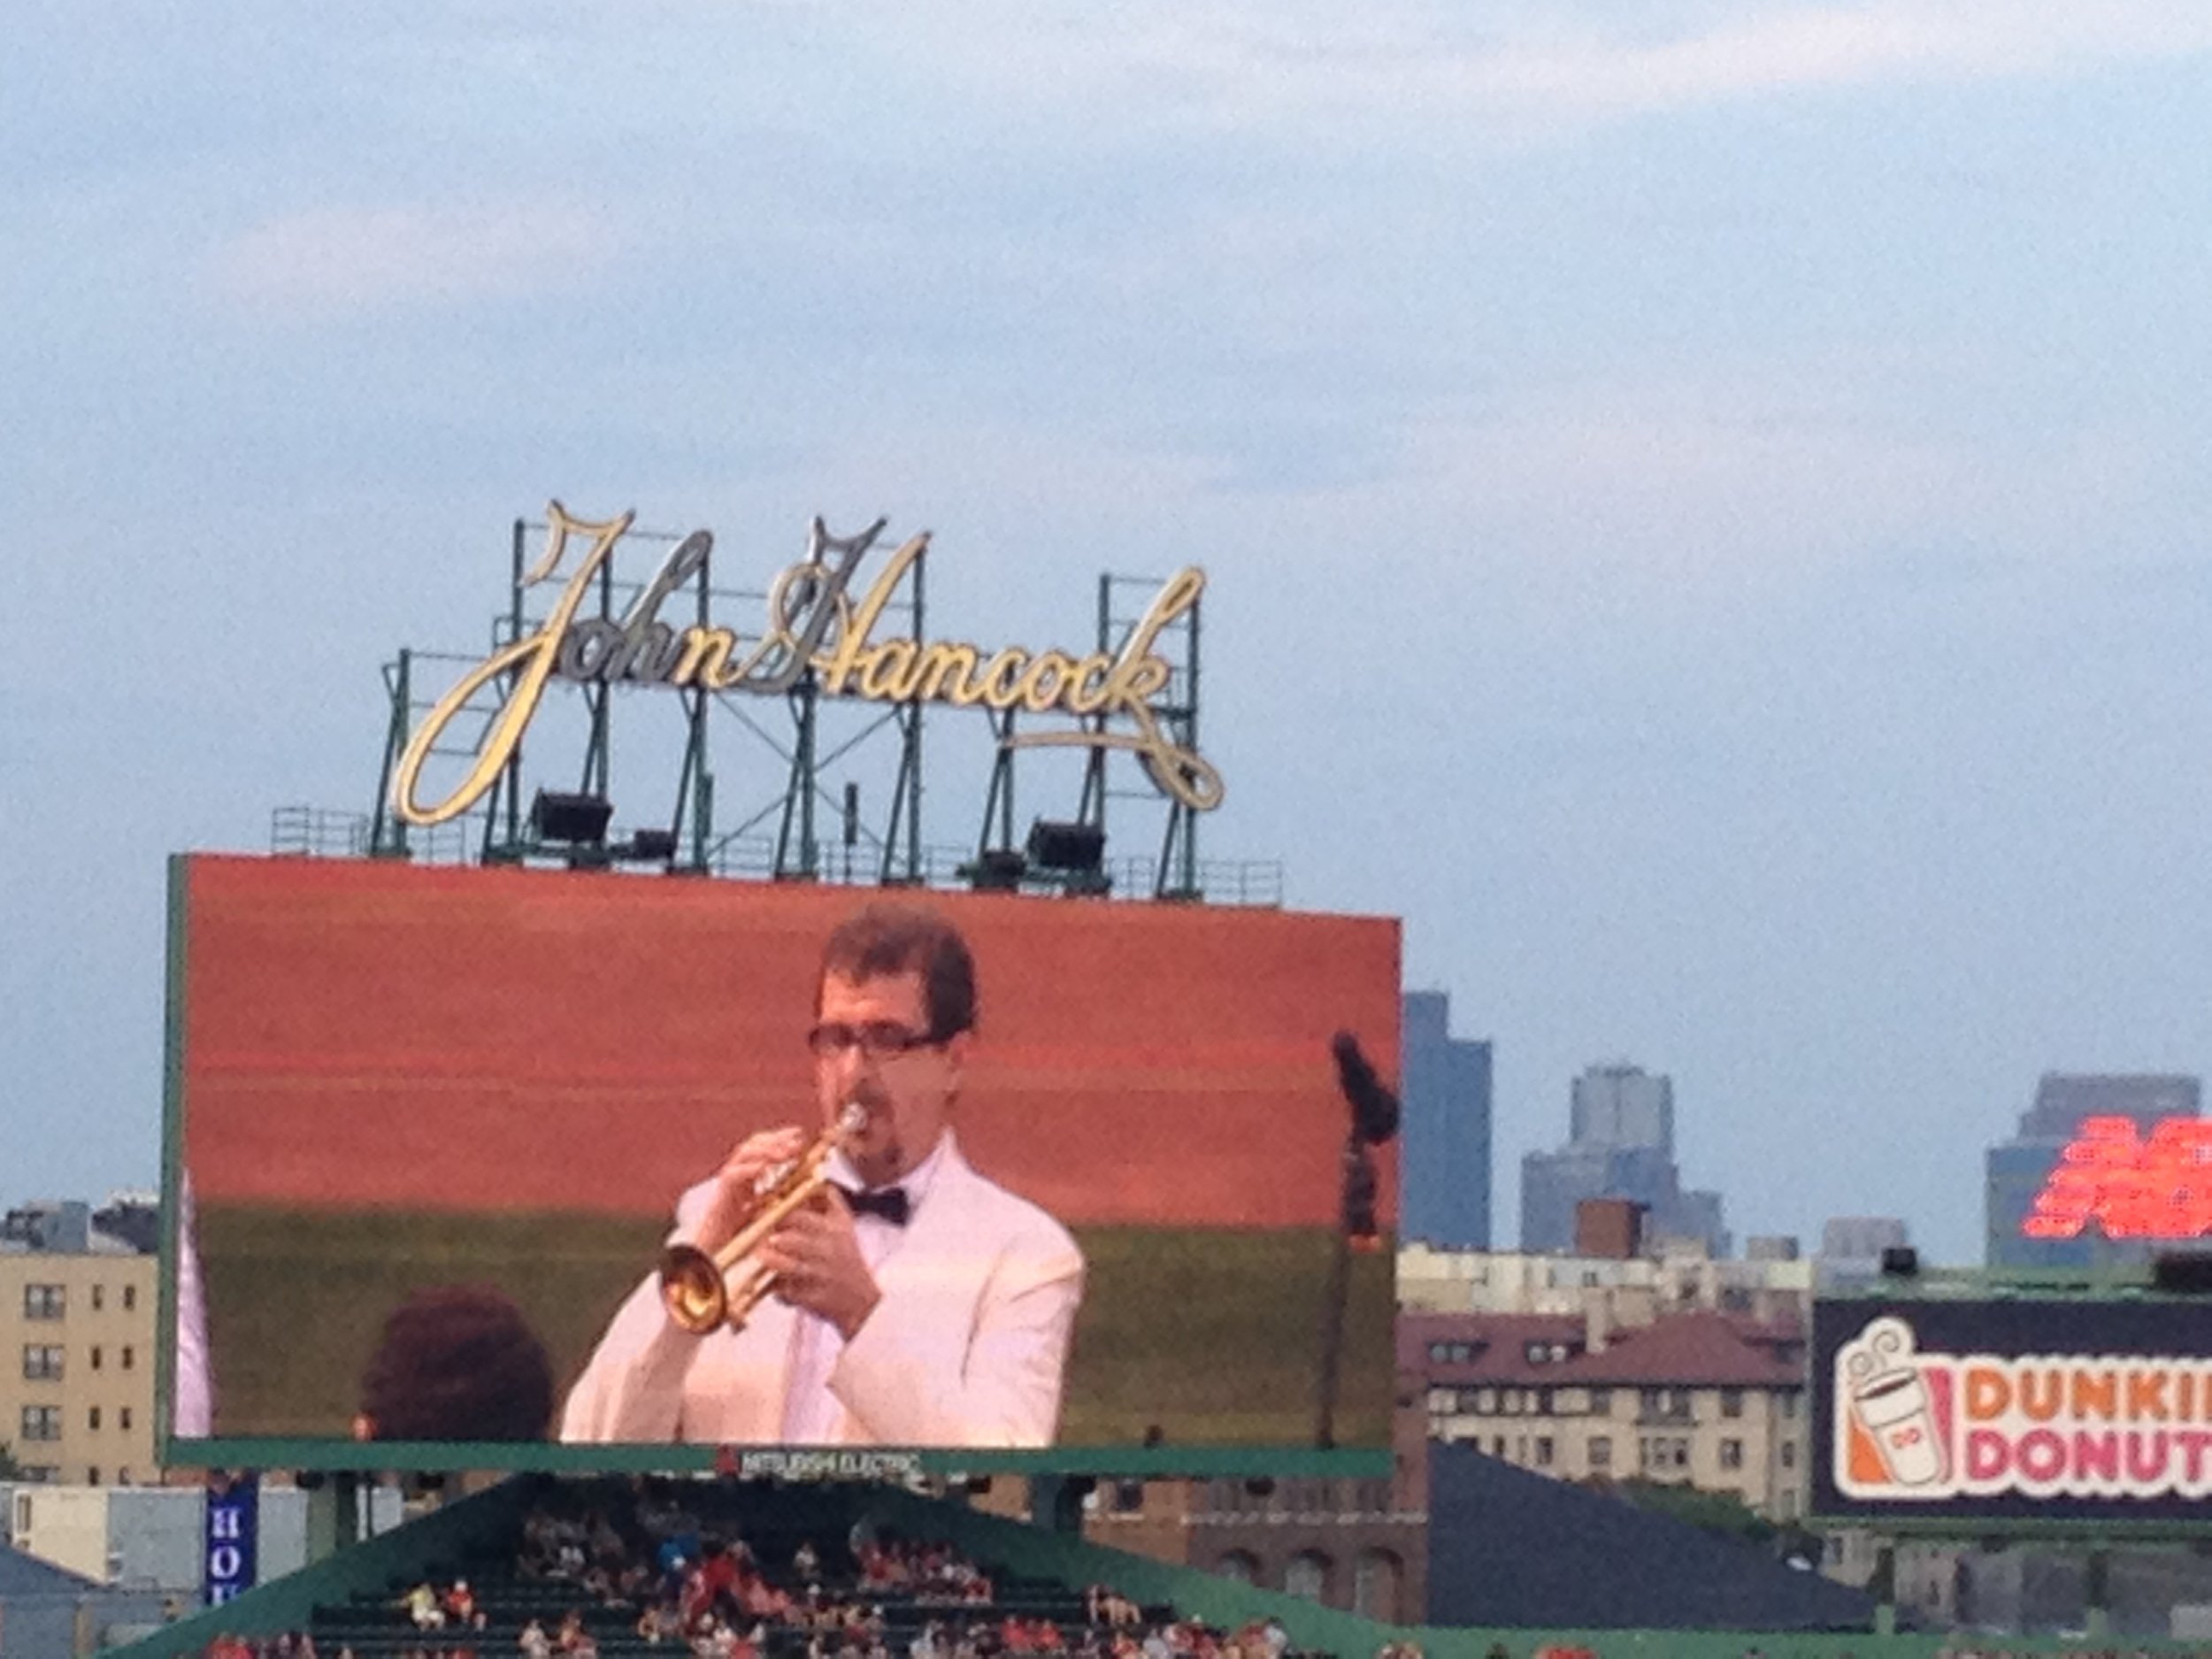 Andris Nelsons Day at Fenway Park, Boston